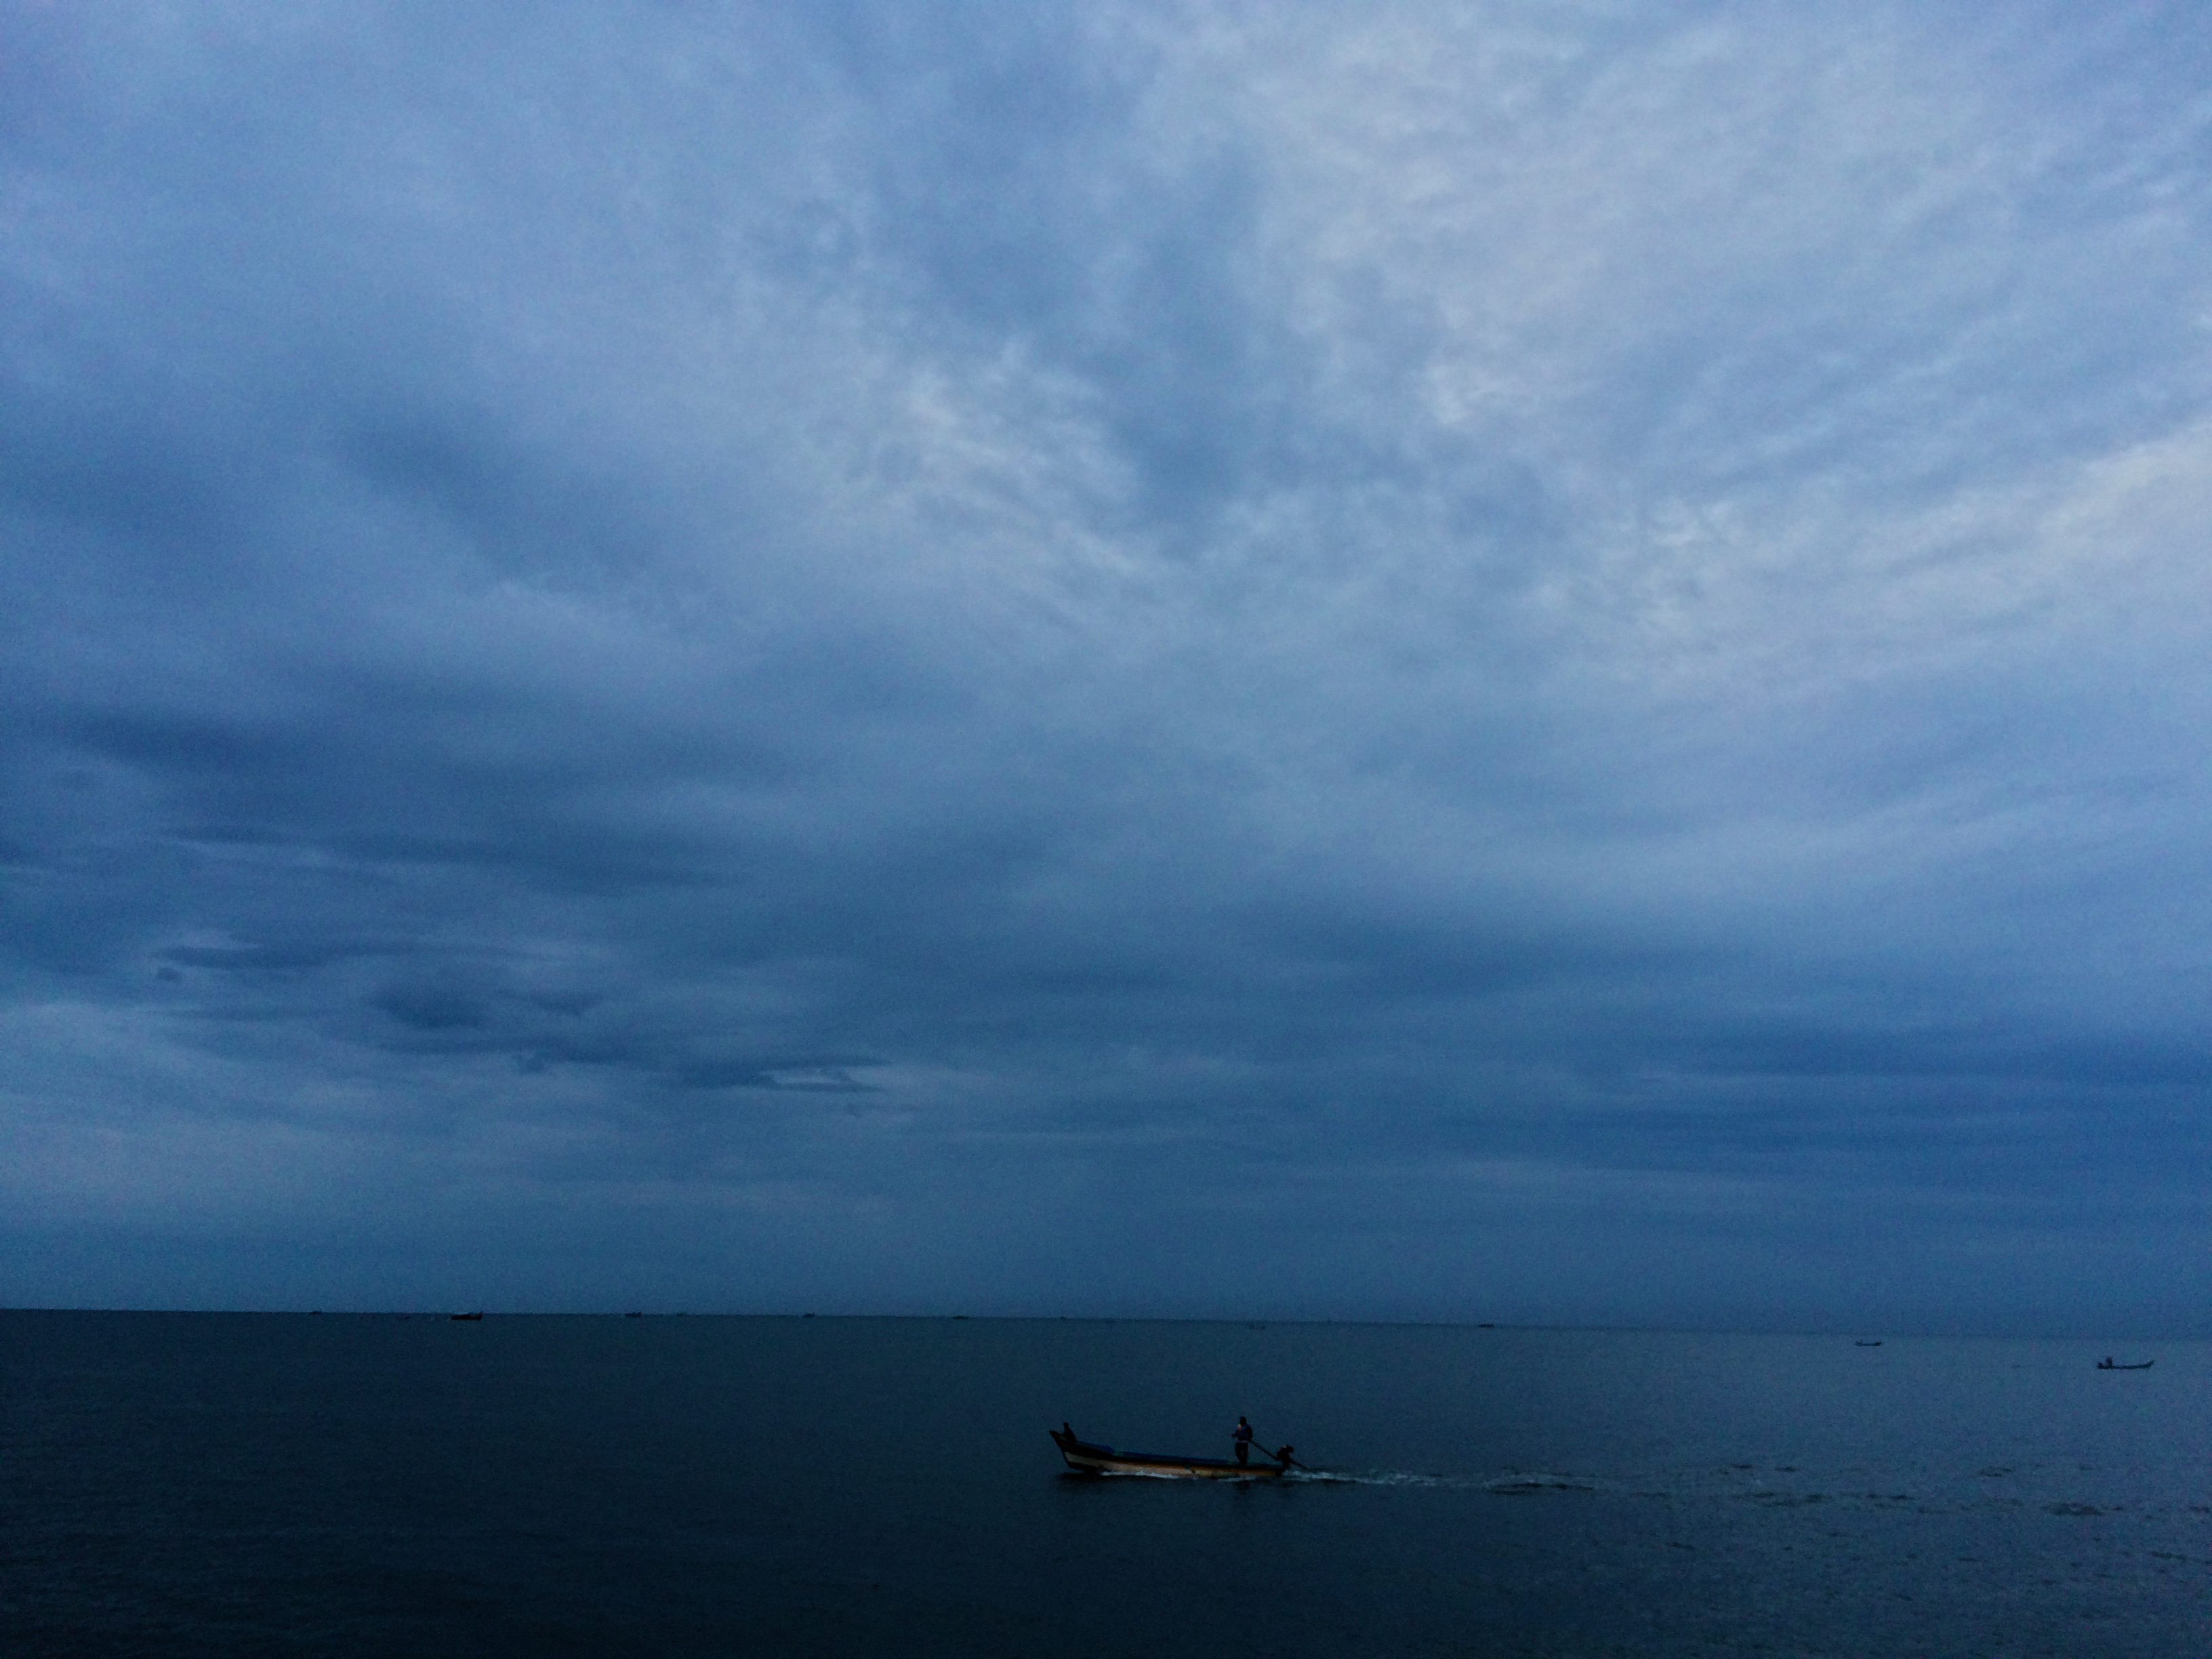 pondicherry sea and pondicherry beach on a cloudy day